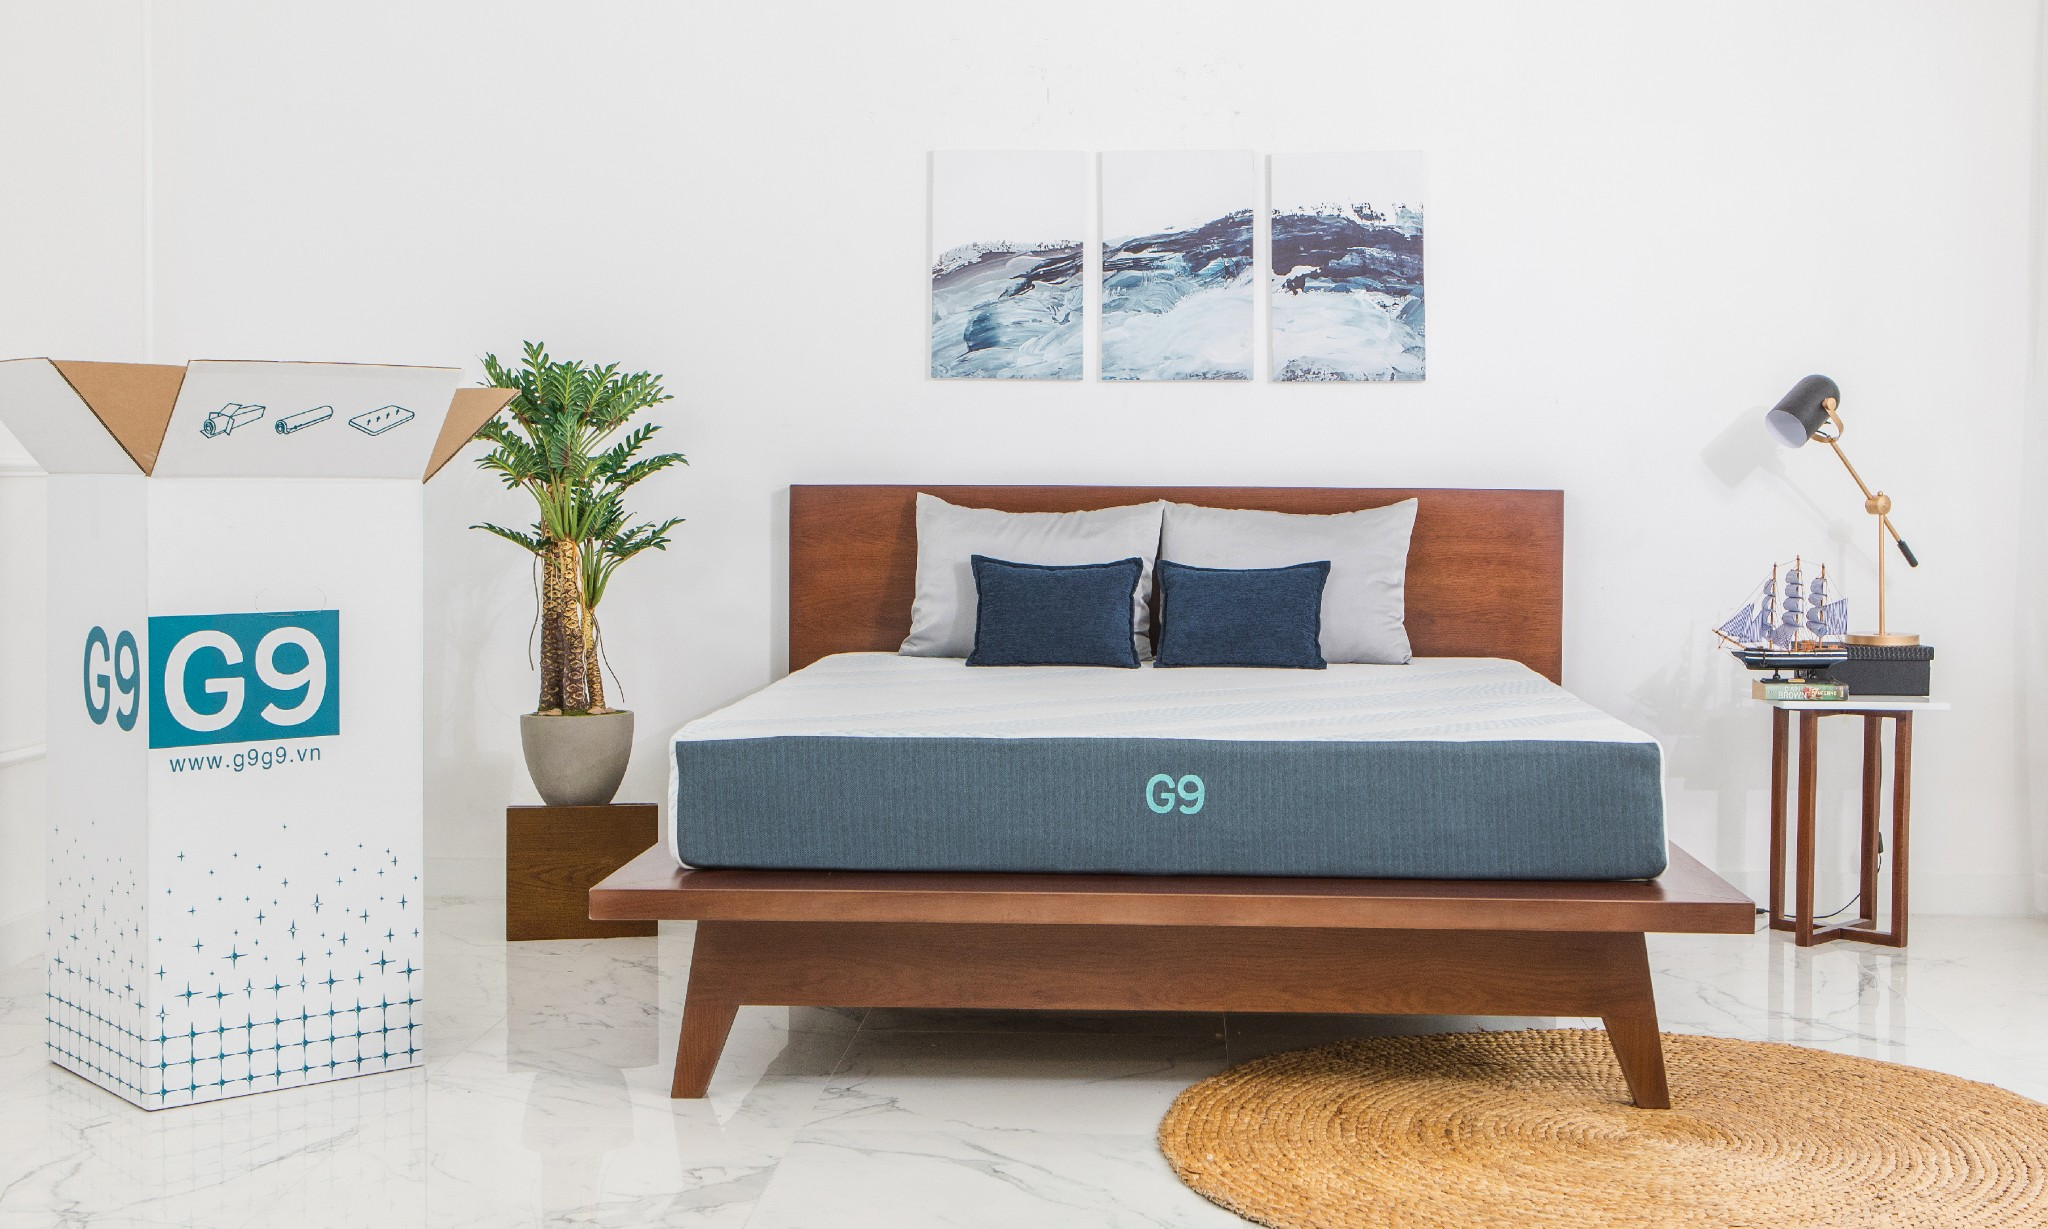 The Noa Sunrise bed